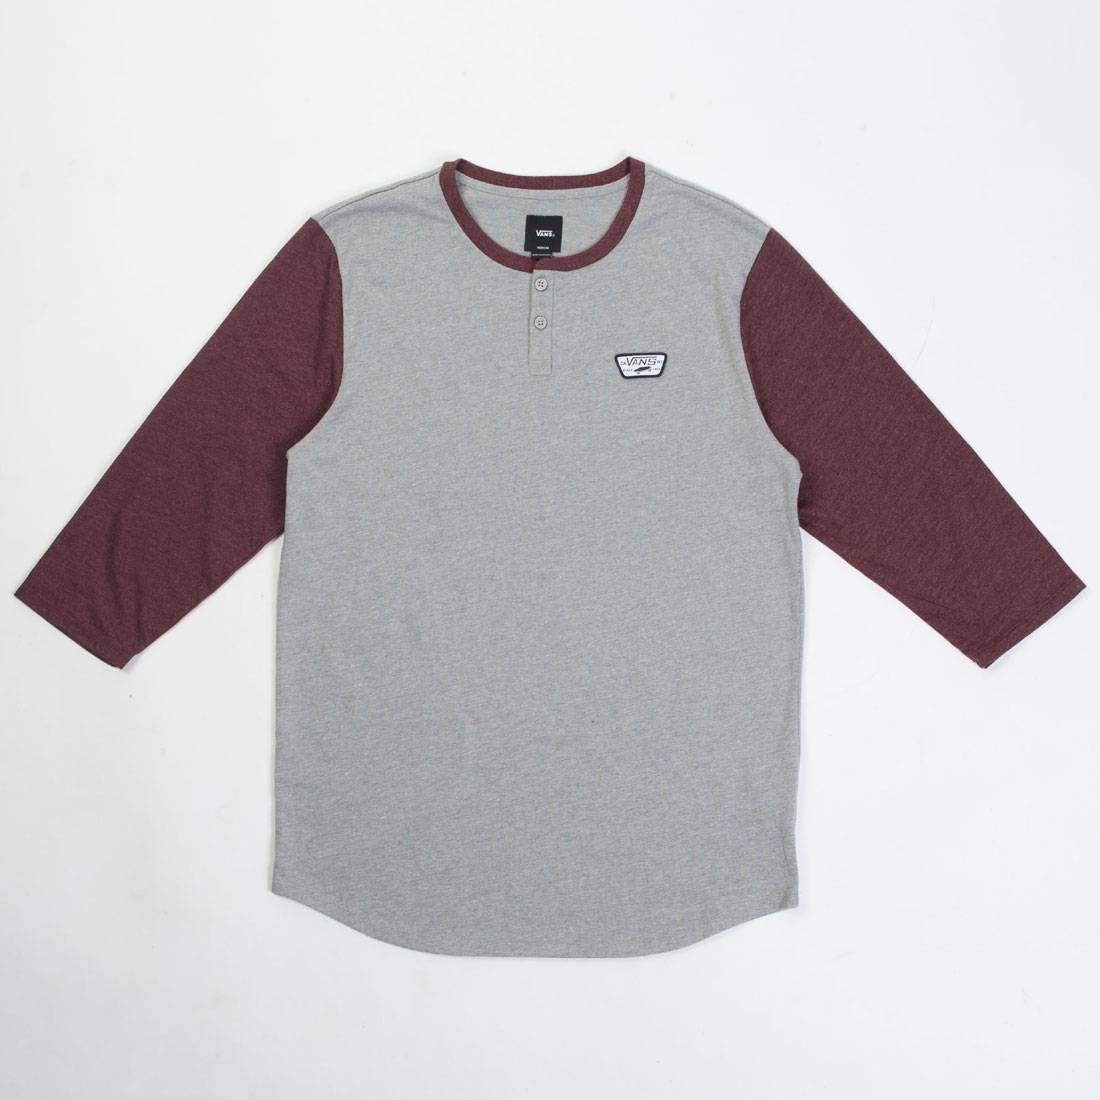 5c5e20ff33 Vans Men Cajon Baseball Tee gray burgundy